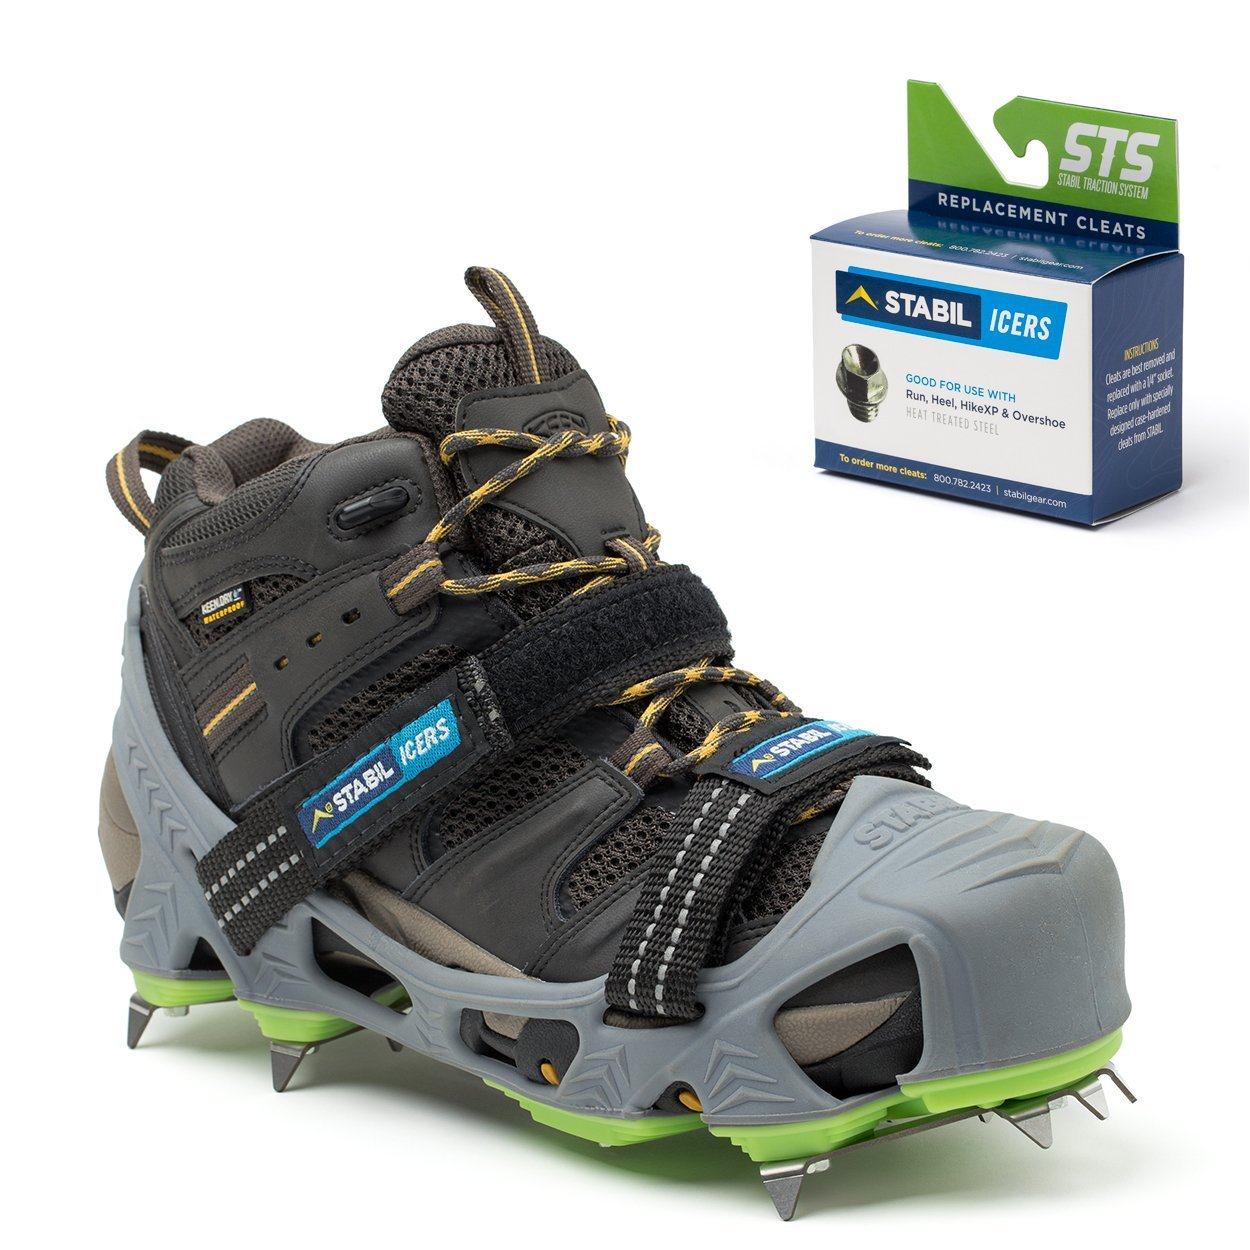 STABILicers HIKE Macro, Made in USA, High Performance Snow and Ice Traction Cleats for Shoes and Boots, 25 Replacement Cleats Included, Gray/Green, Size LG